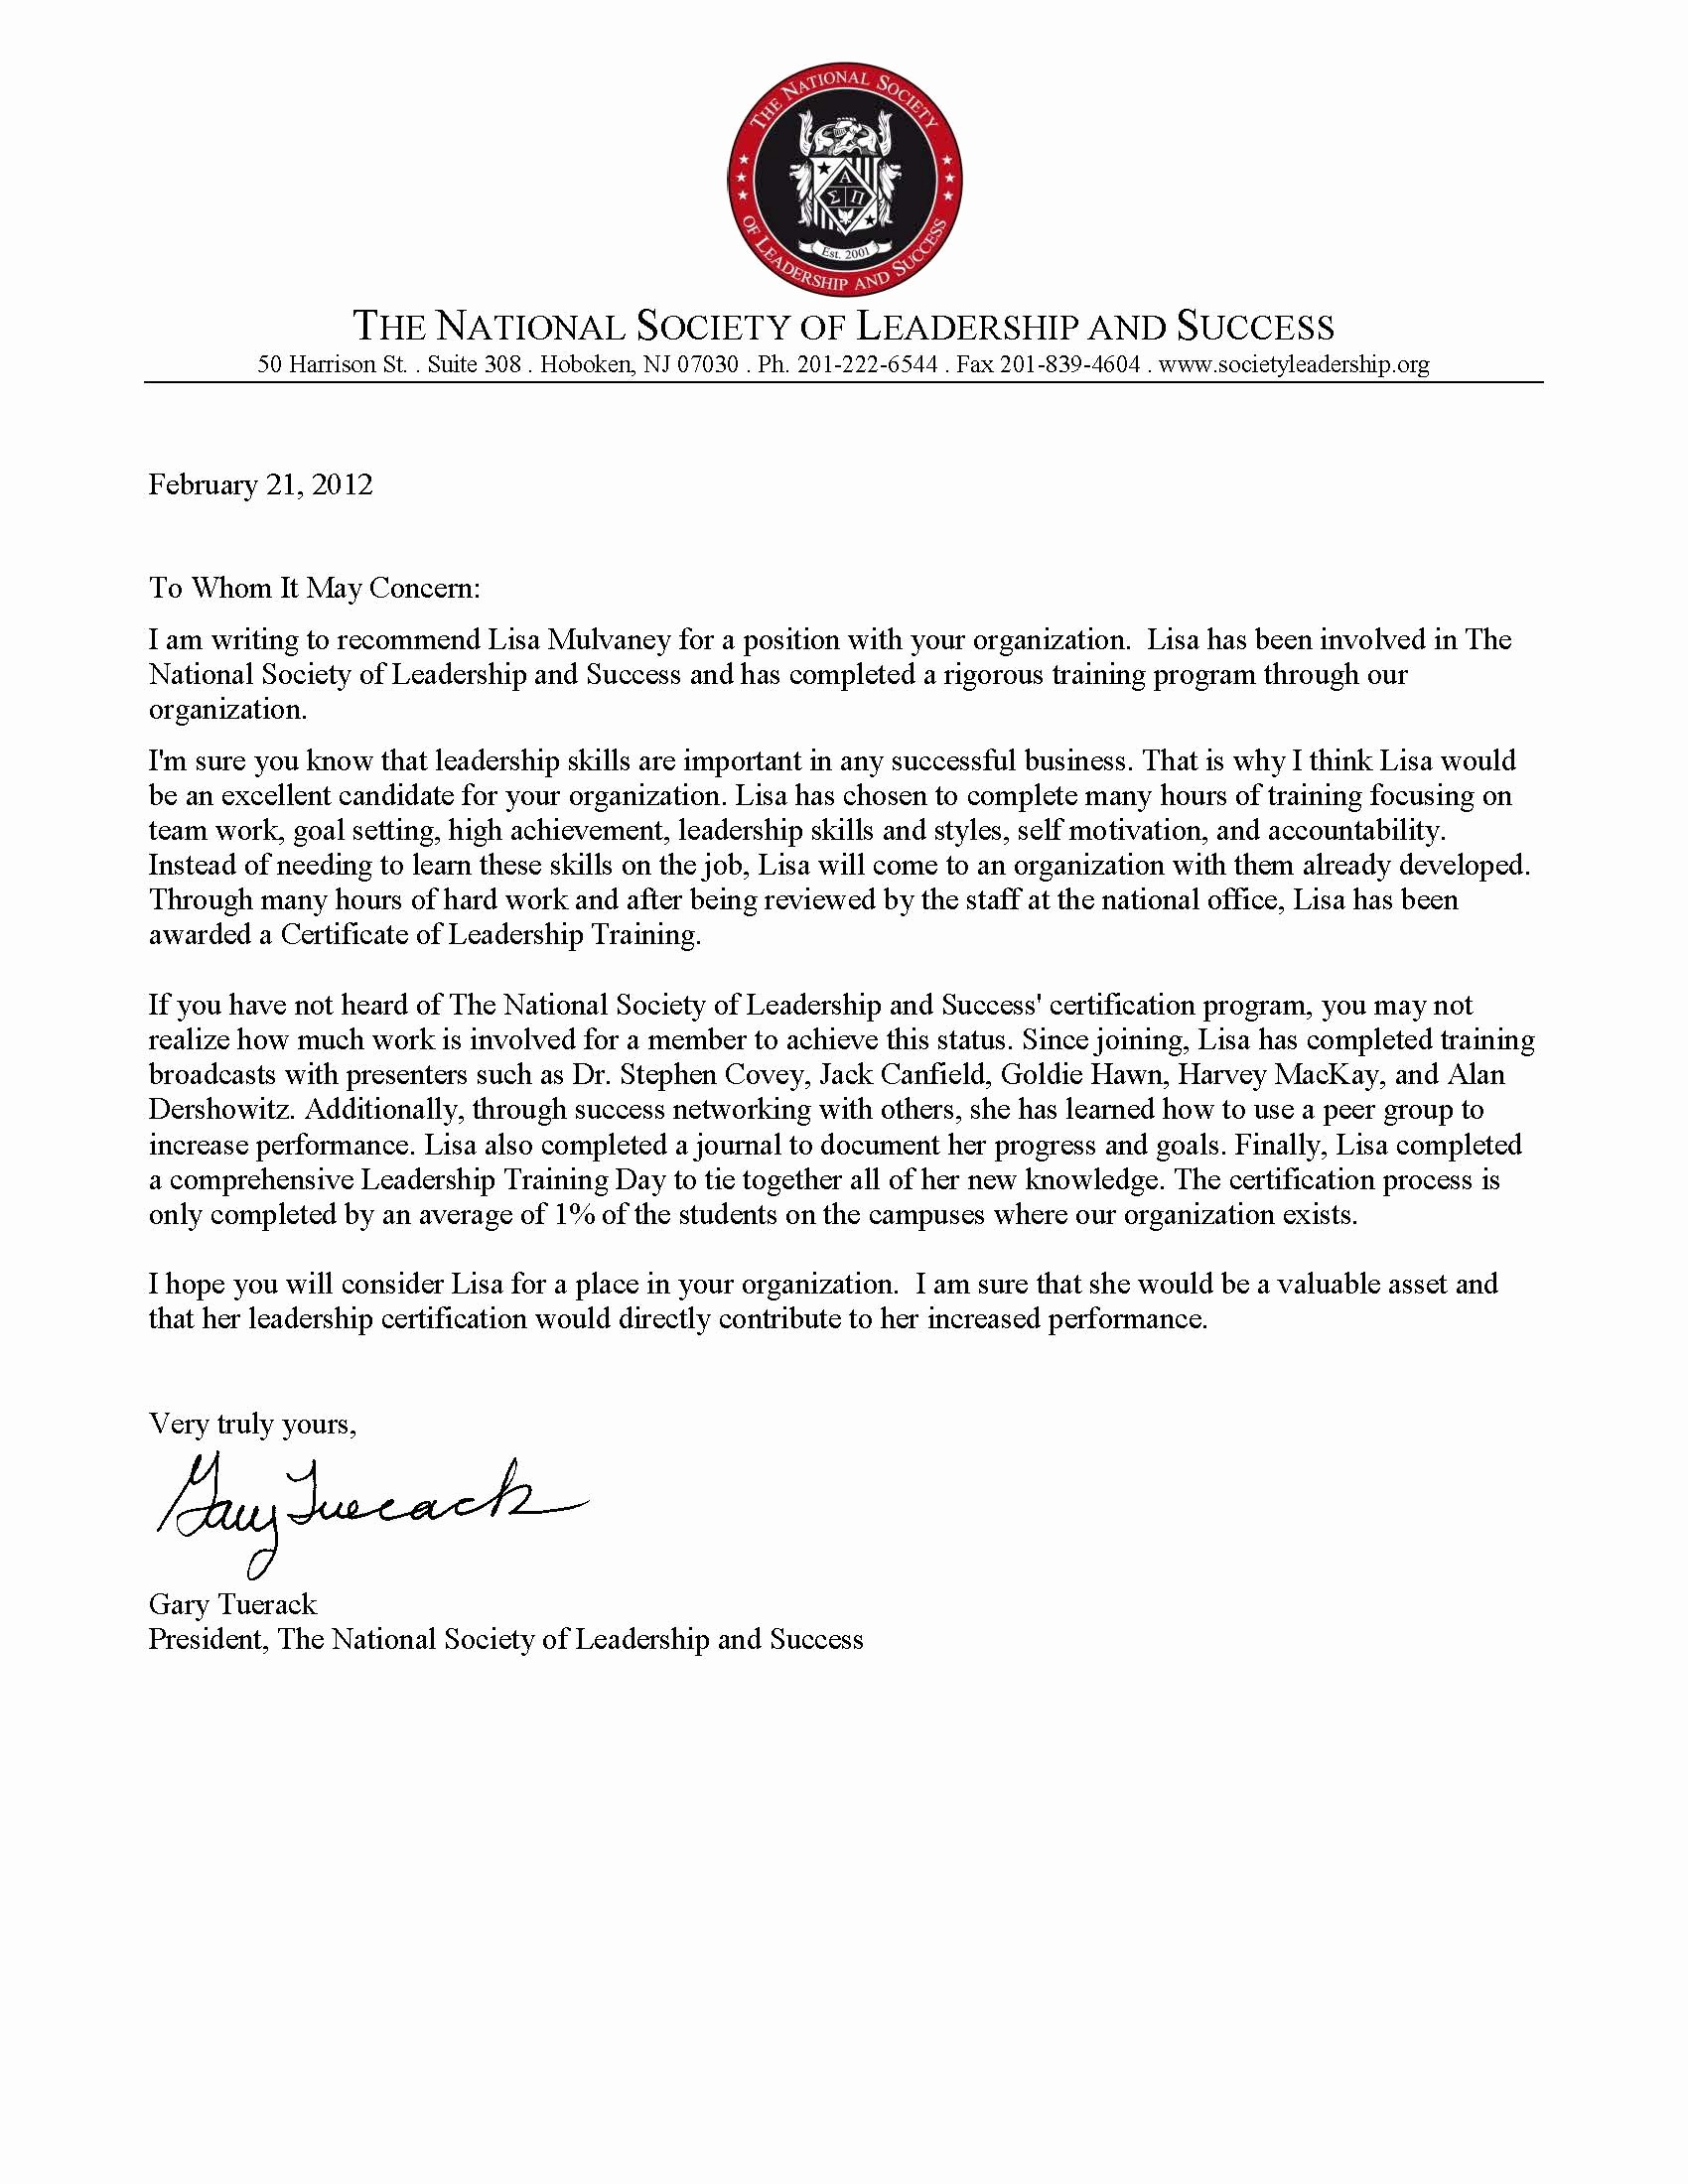 Images Of Letters Of Recommendation Elegant Letter Of Re Mendation From the National society Of